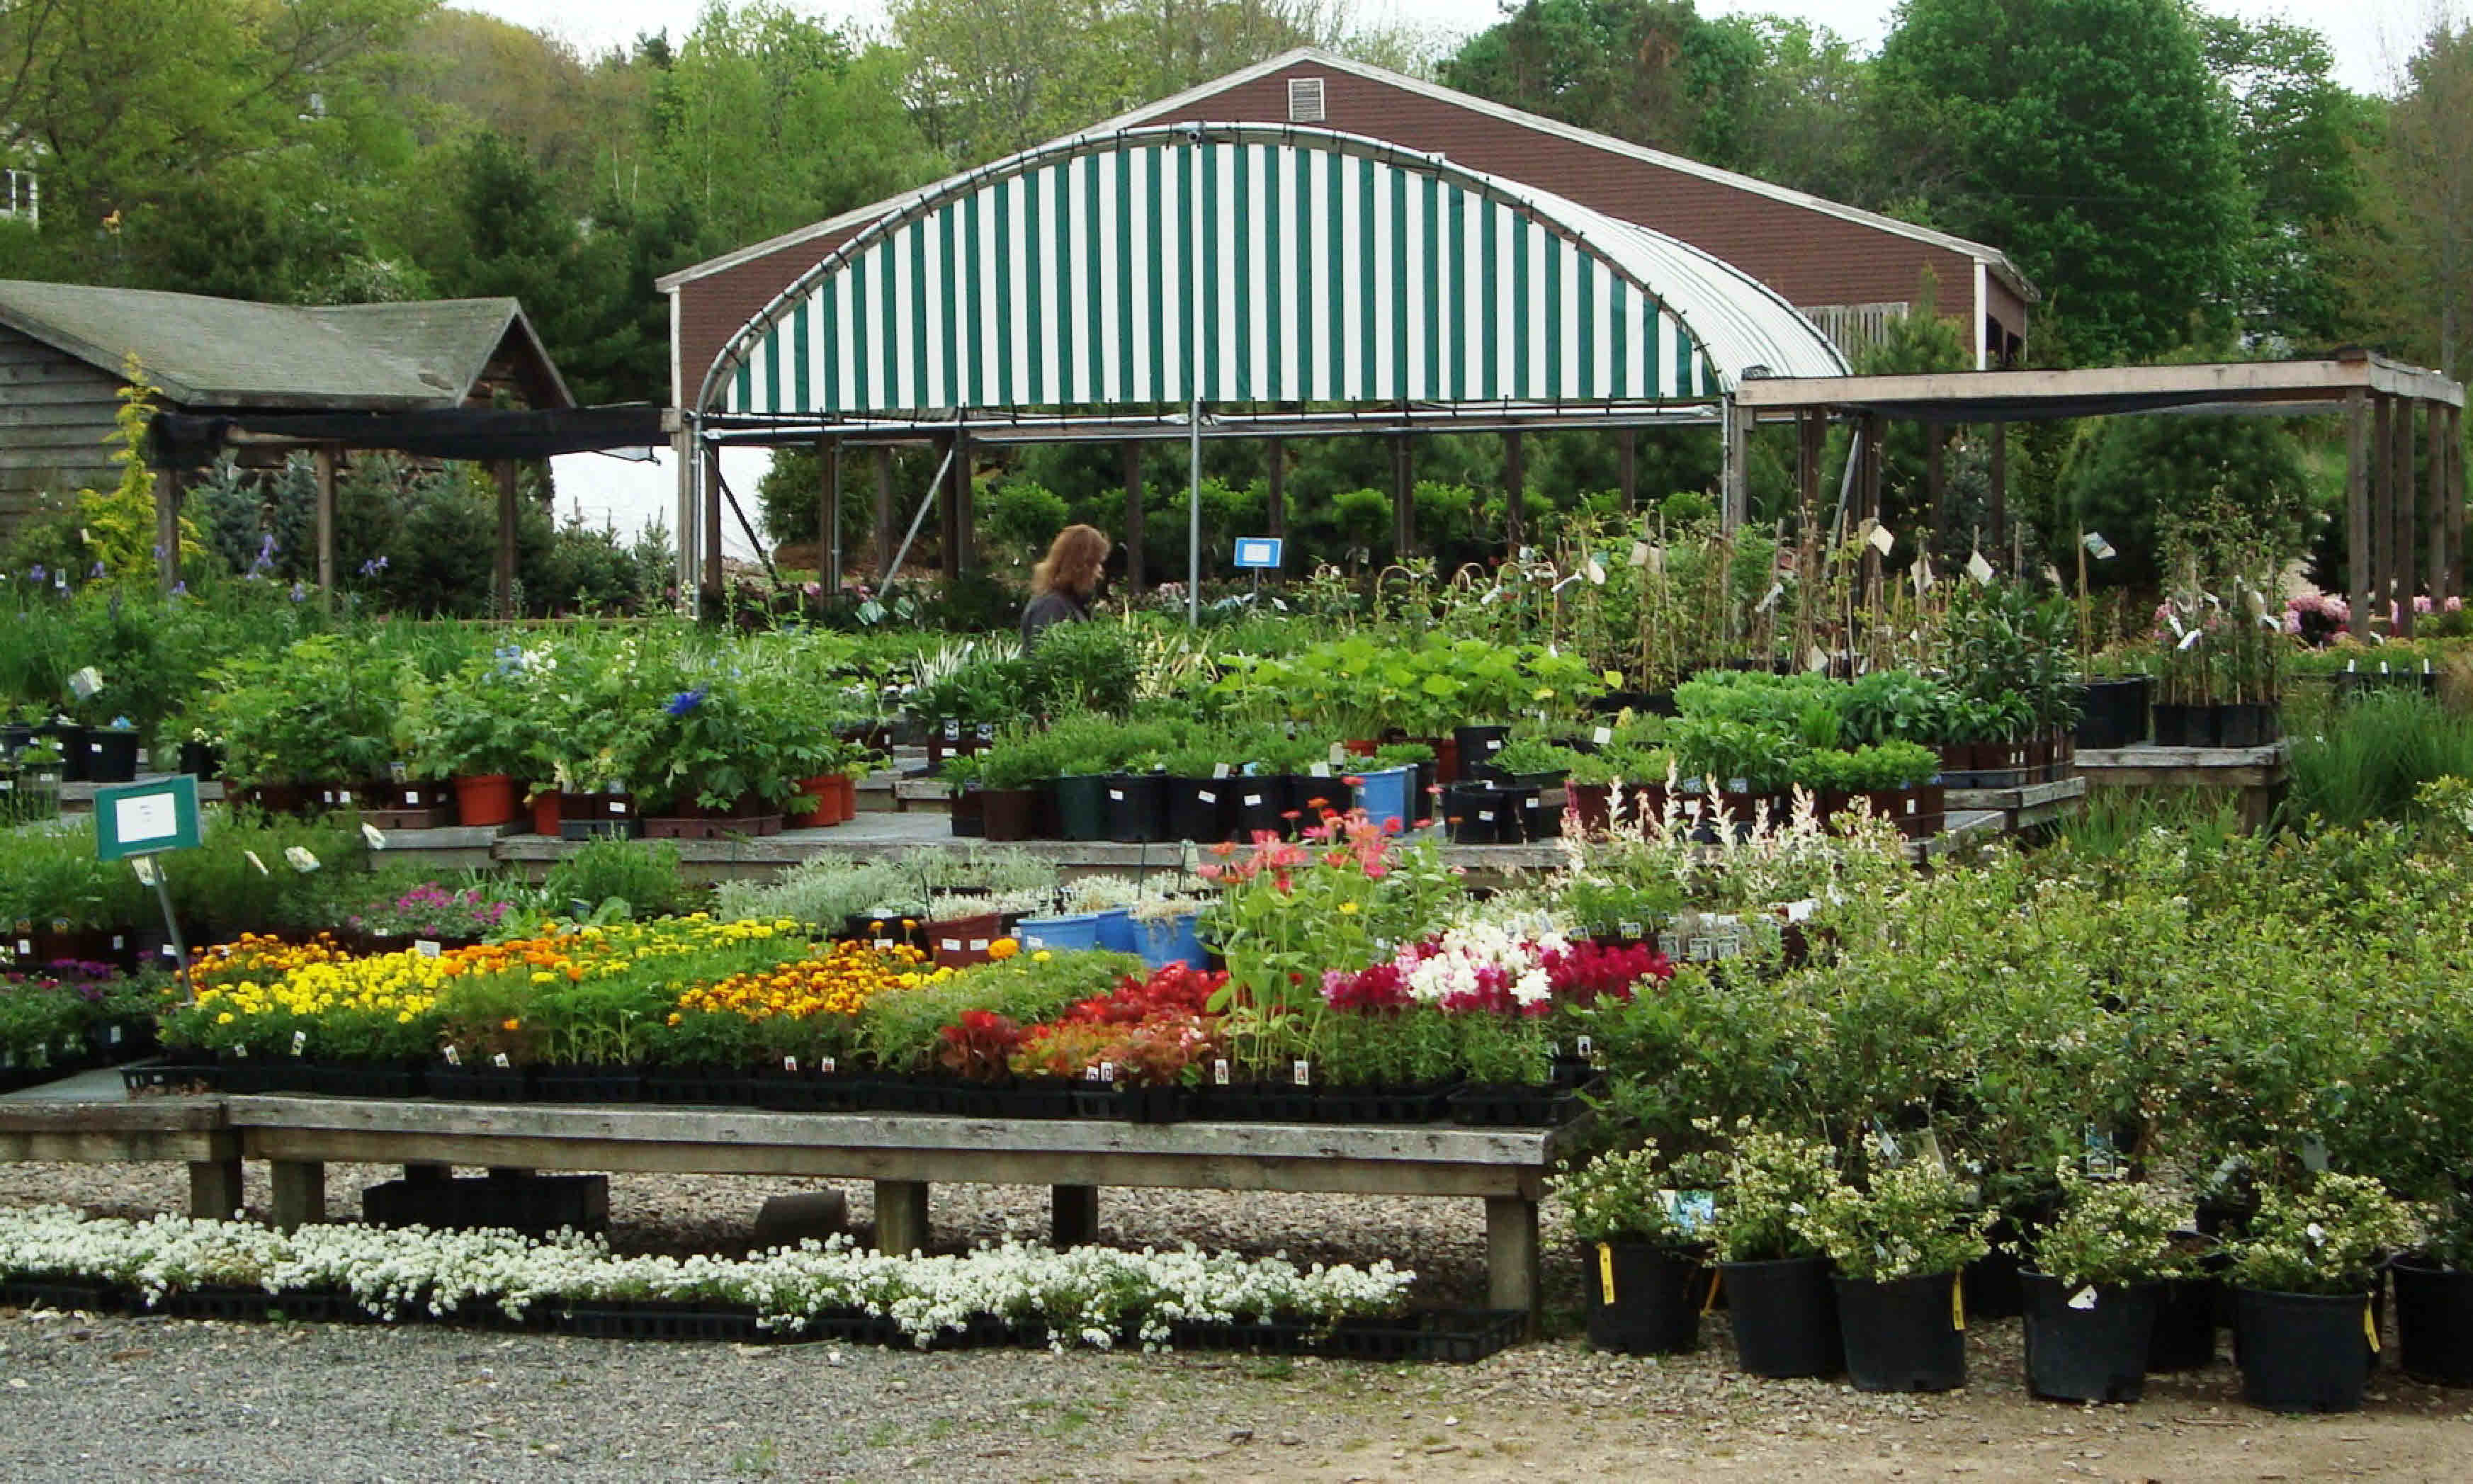 Conley S Garden Center Landscaping Boothbay Harbor Maine